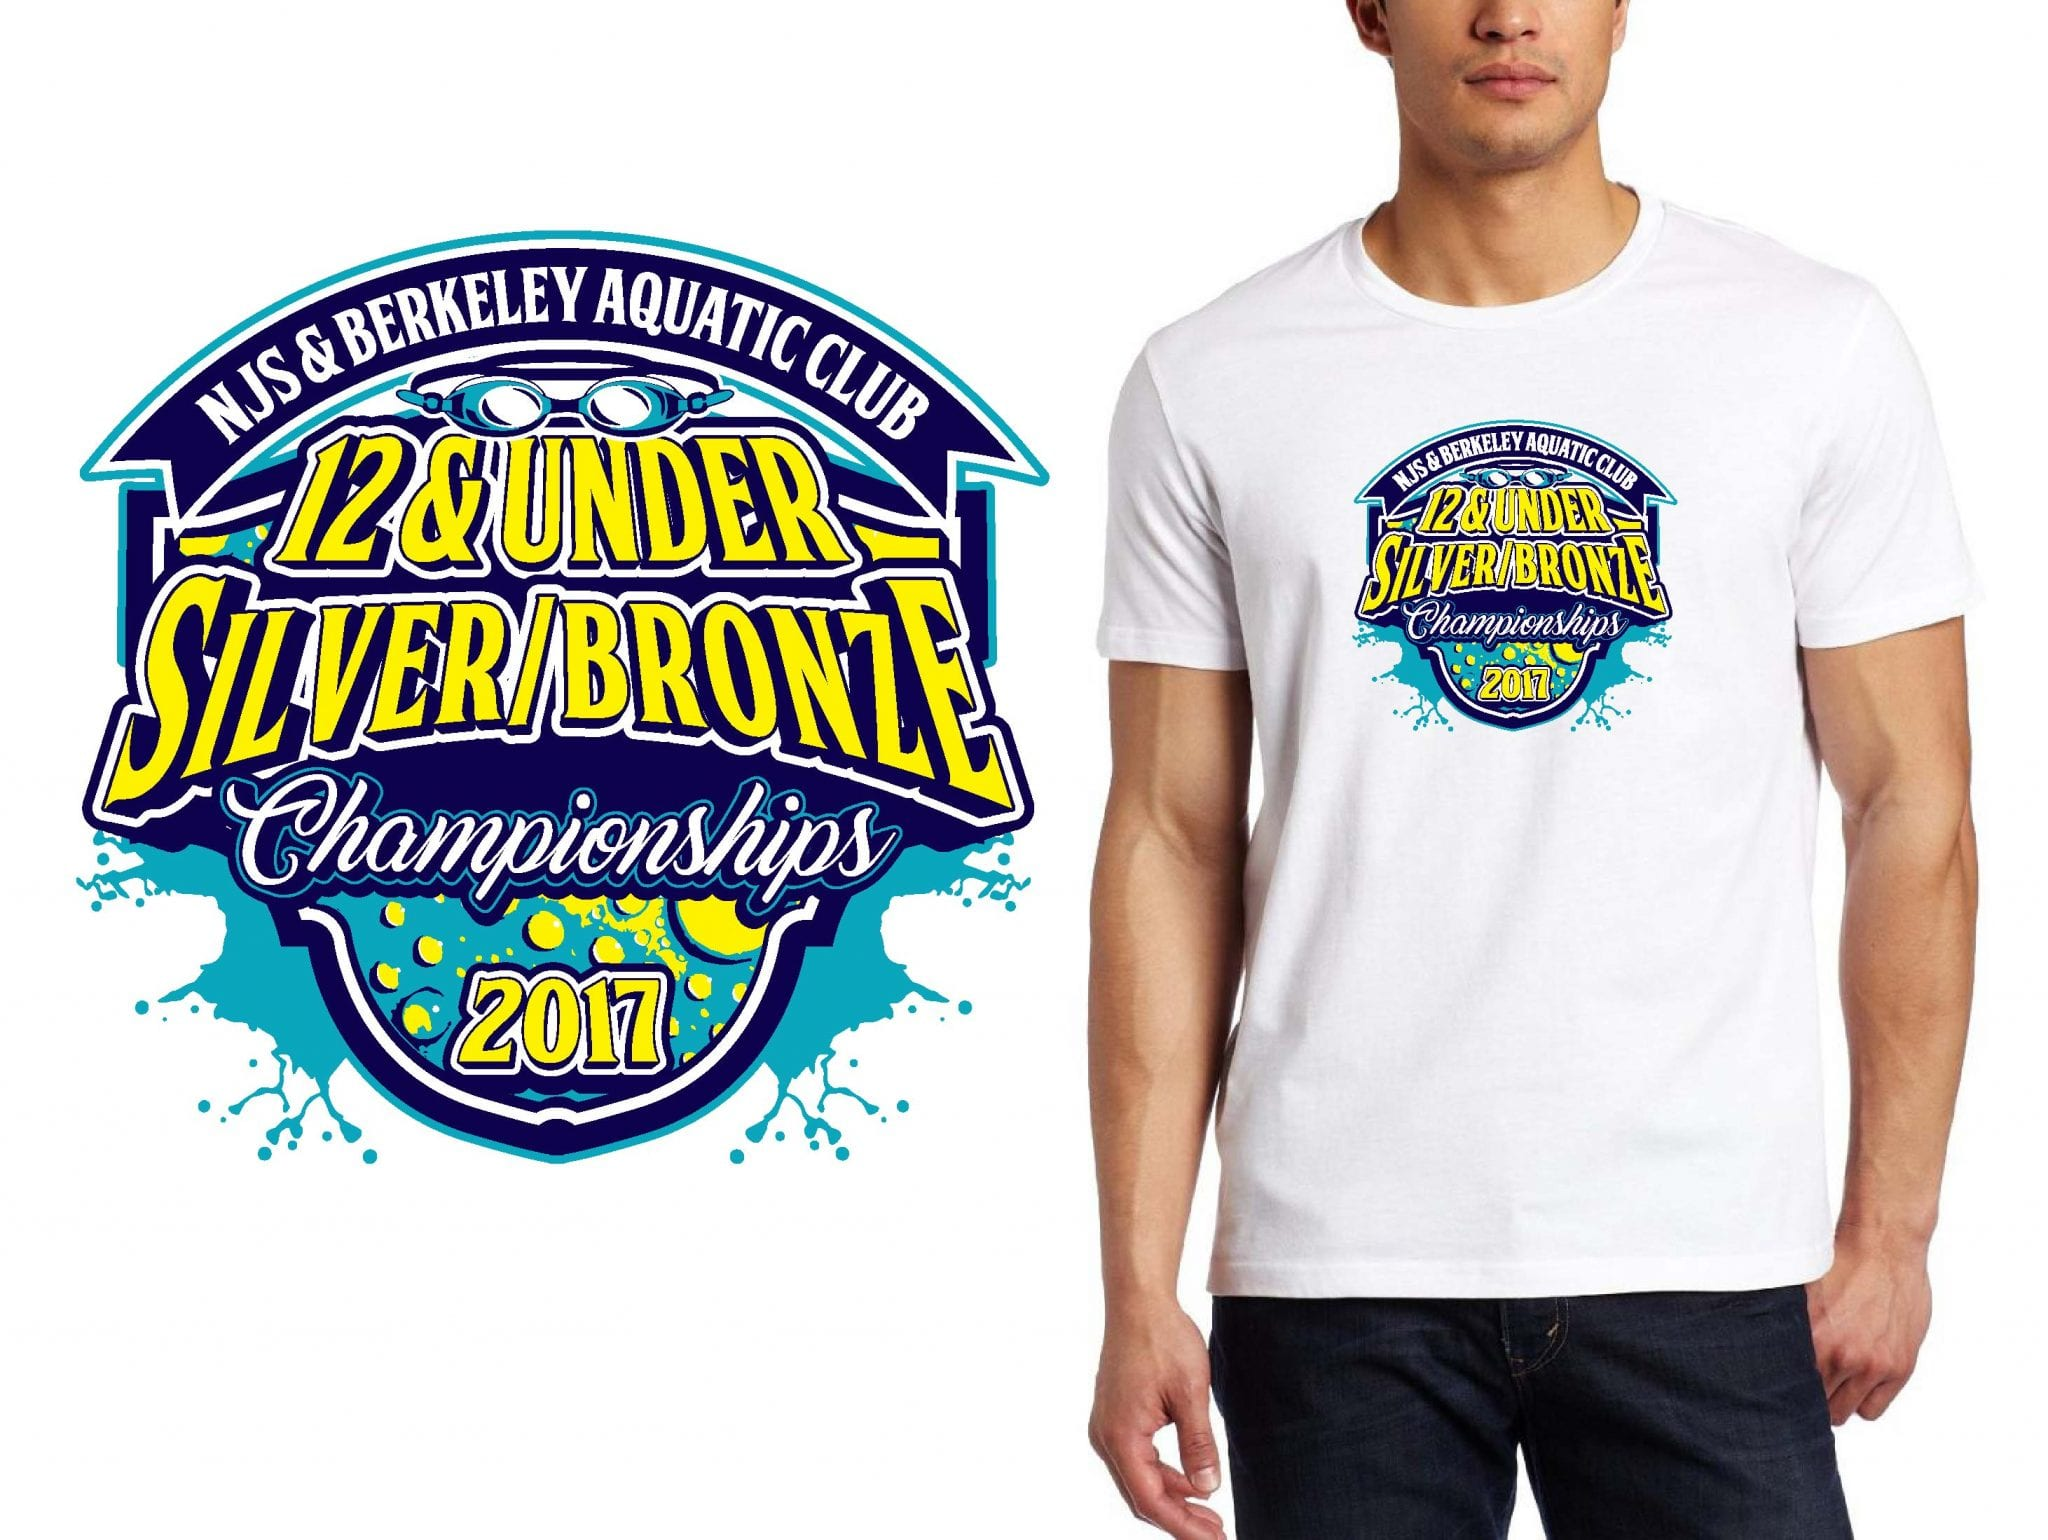 SWIMMING LOGO for NJS-Berkeley-Aquatic-Club-12-Under-Silver-Bronze-Championships T-SHIRT UrArtStudio